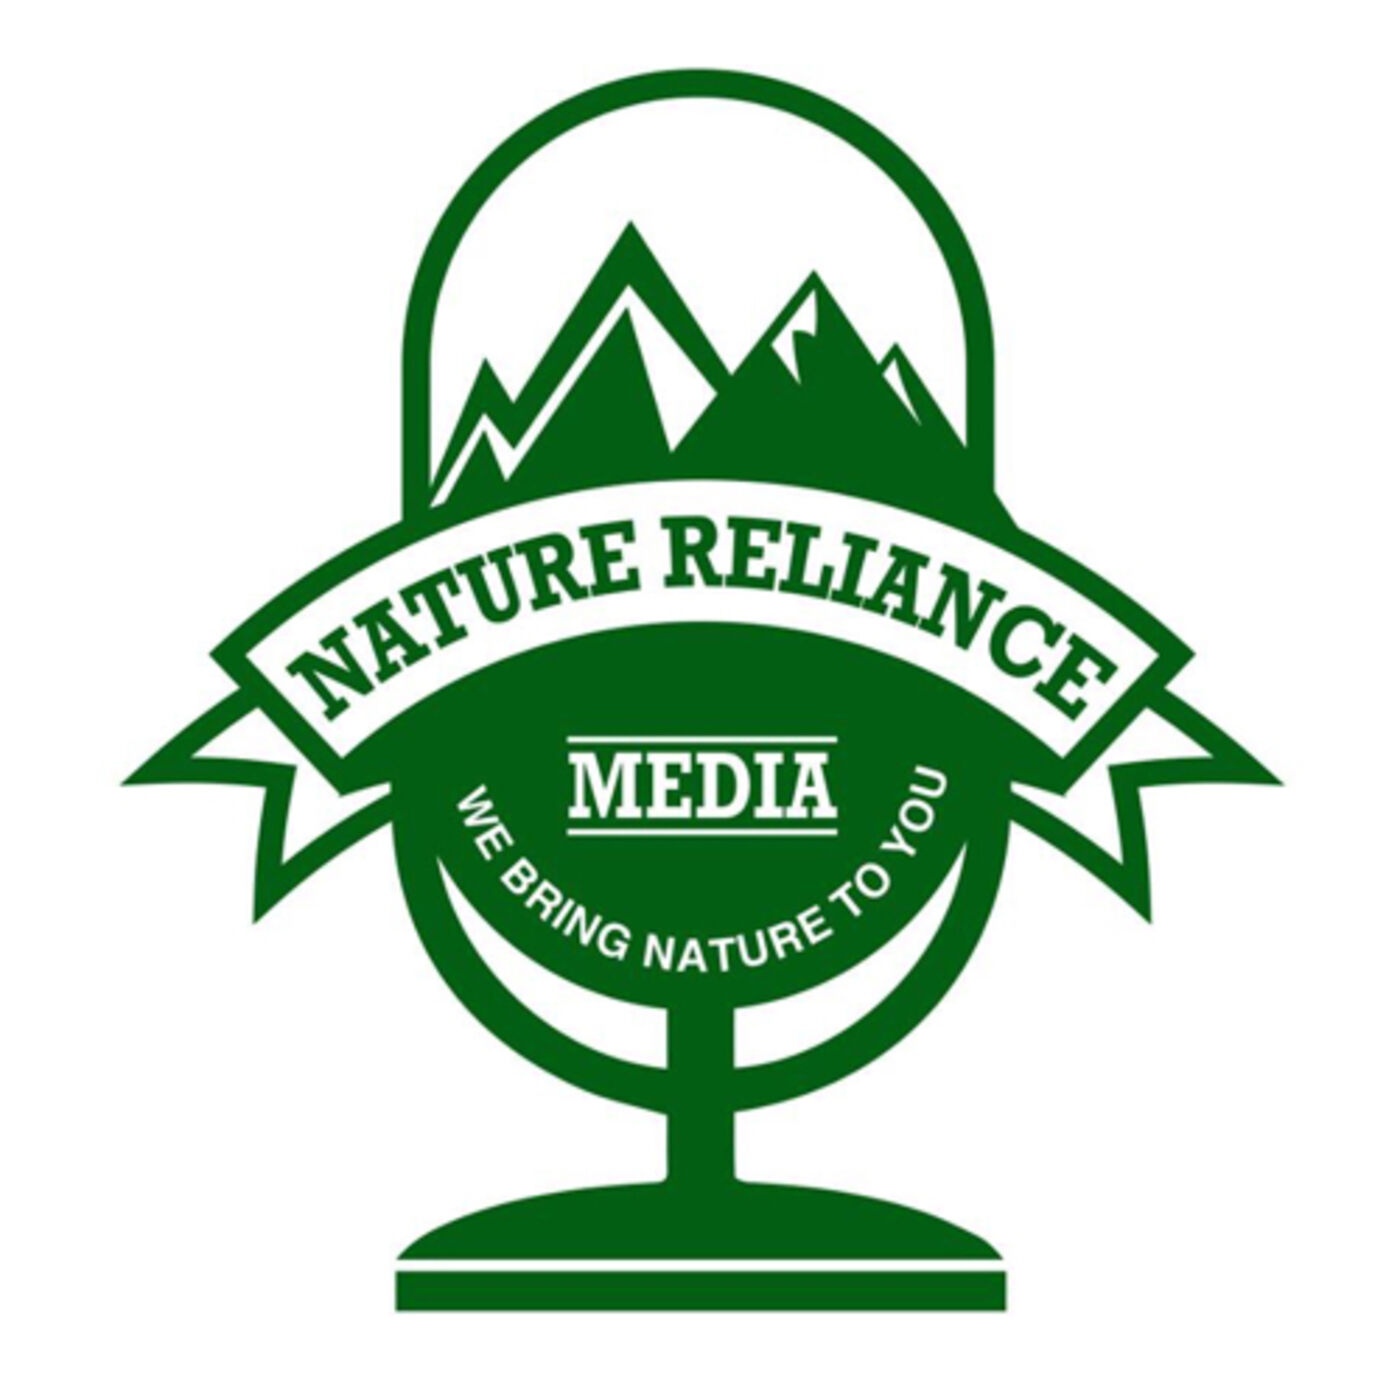 #29 Top 5 Recommendations to help YOU connect to nature